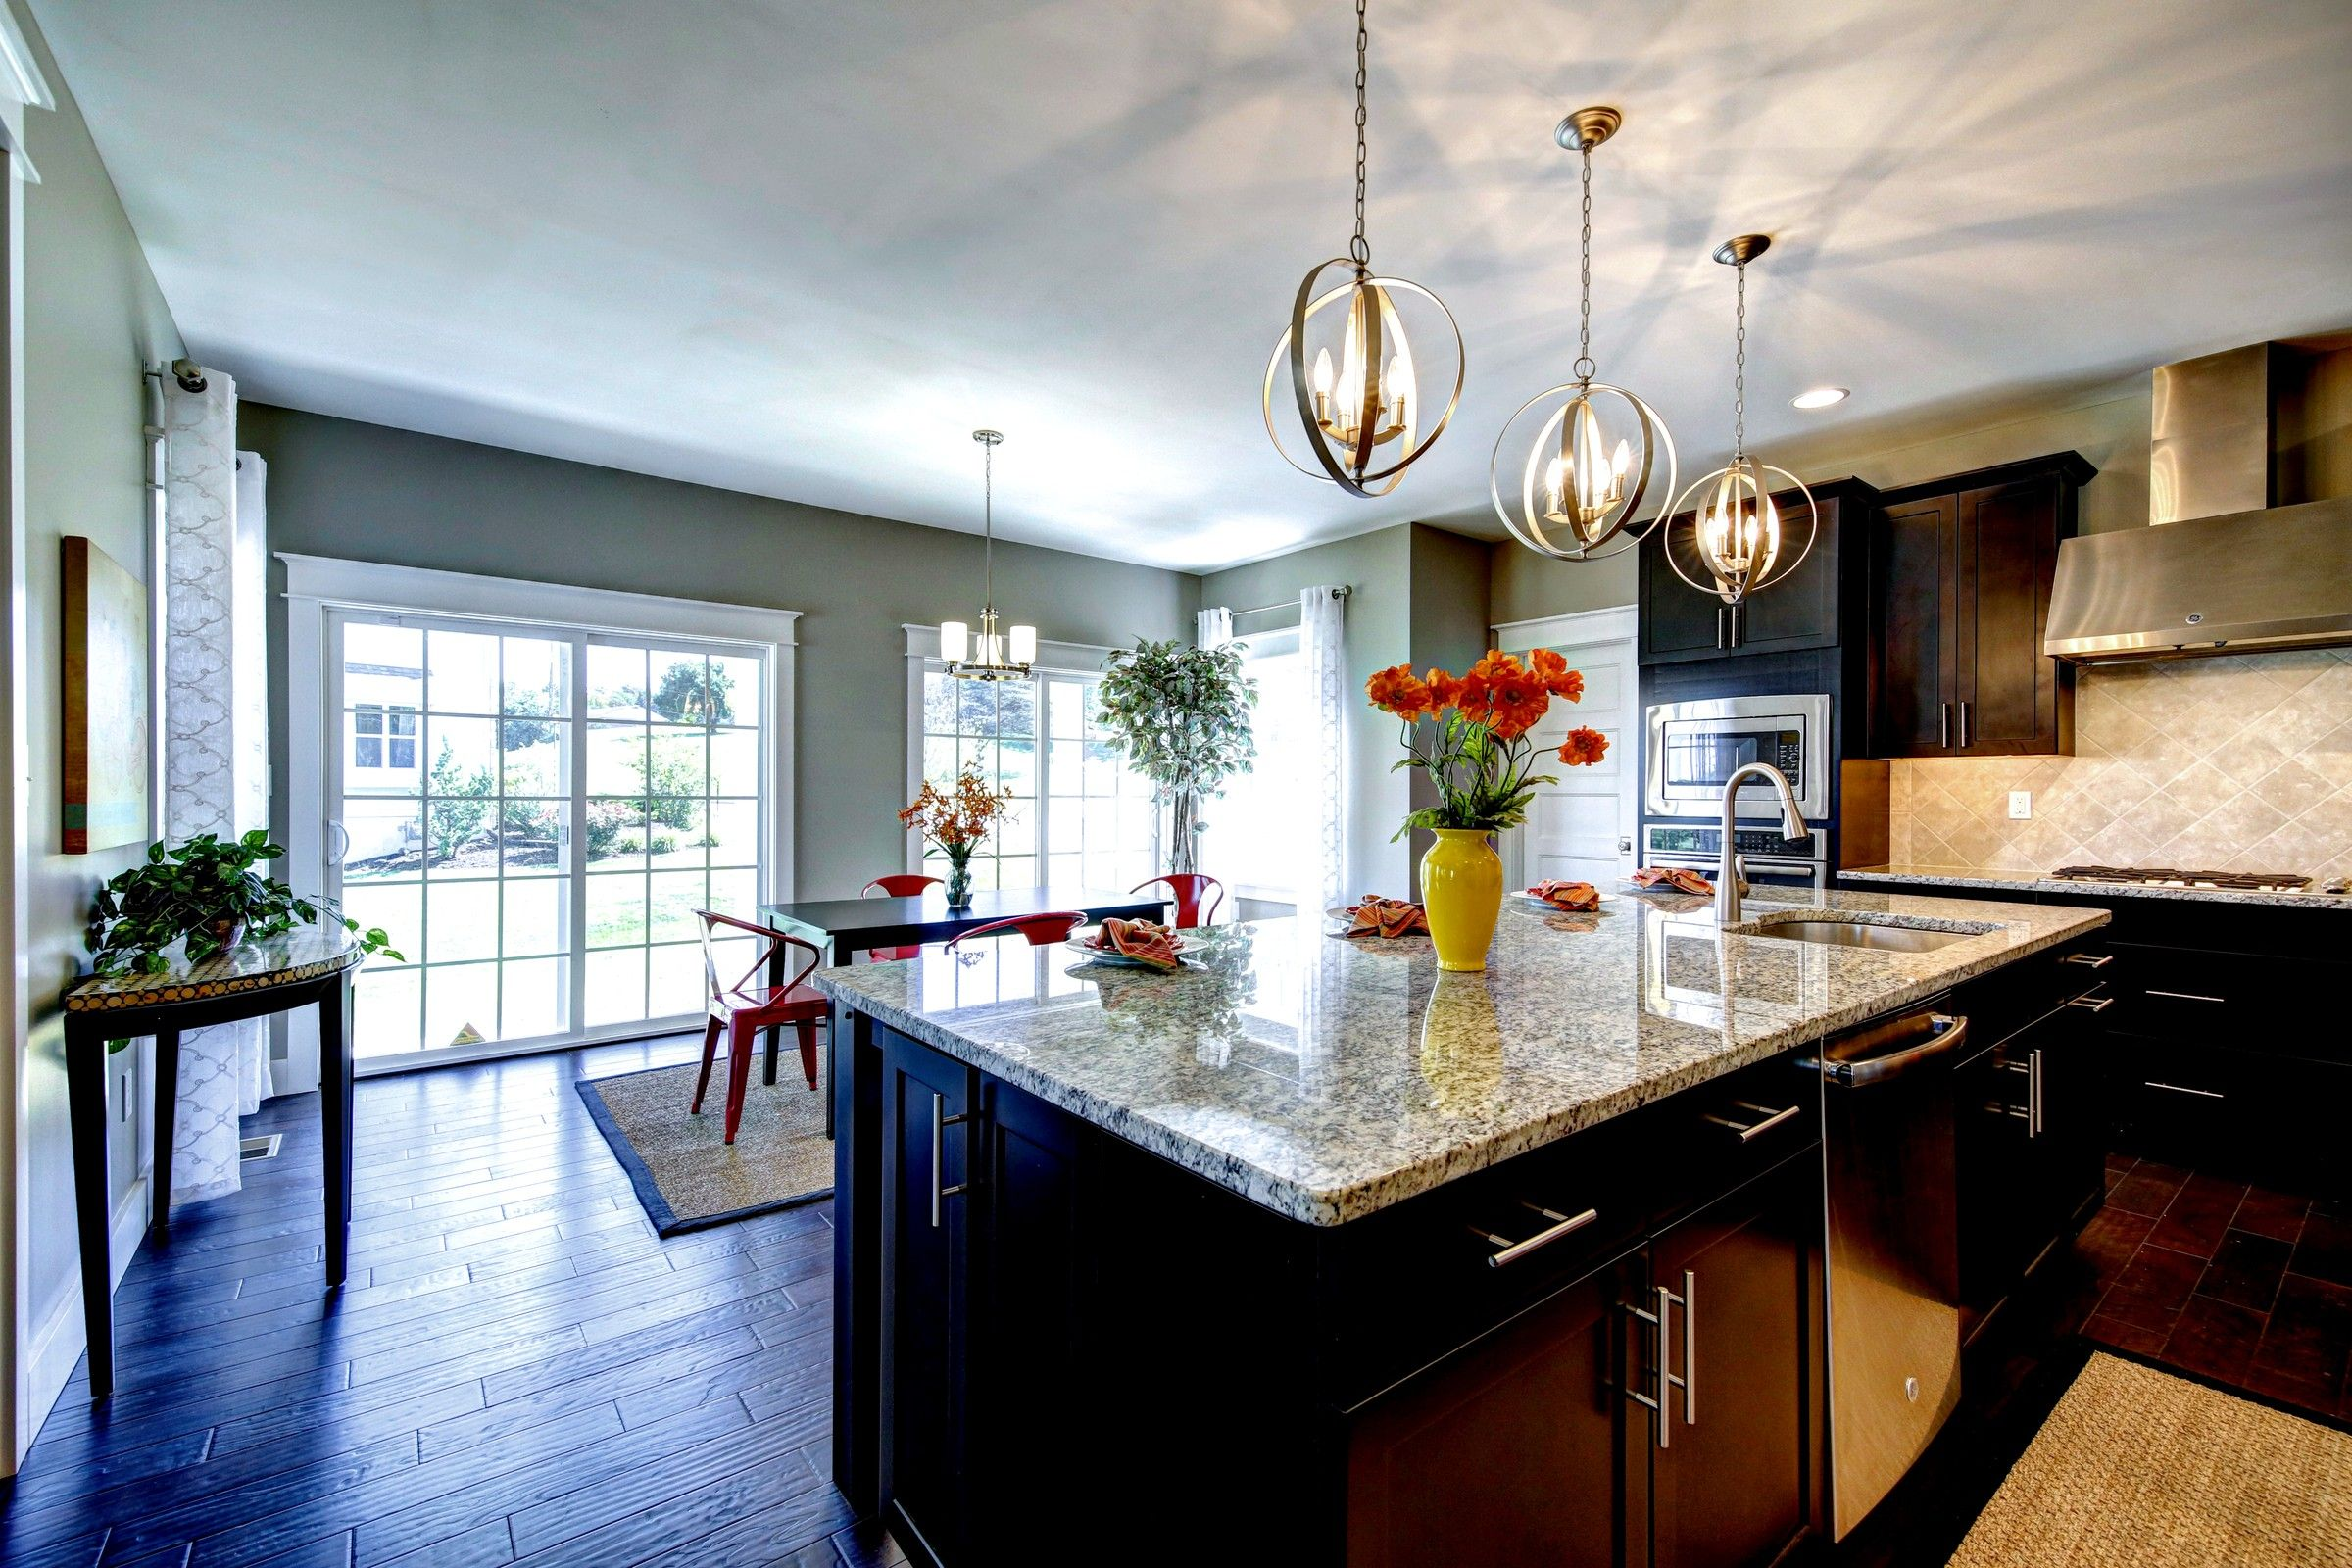 Kitchen featured in the Ethan Farmhouse By Keystone Custom Homes in Baltimore, MD